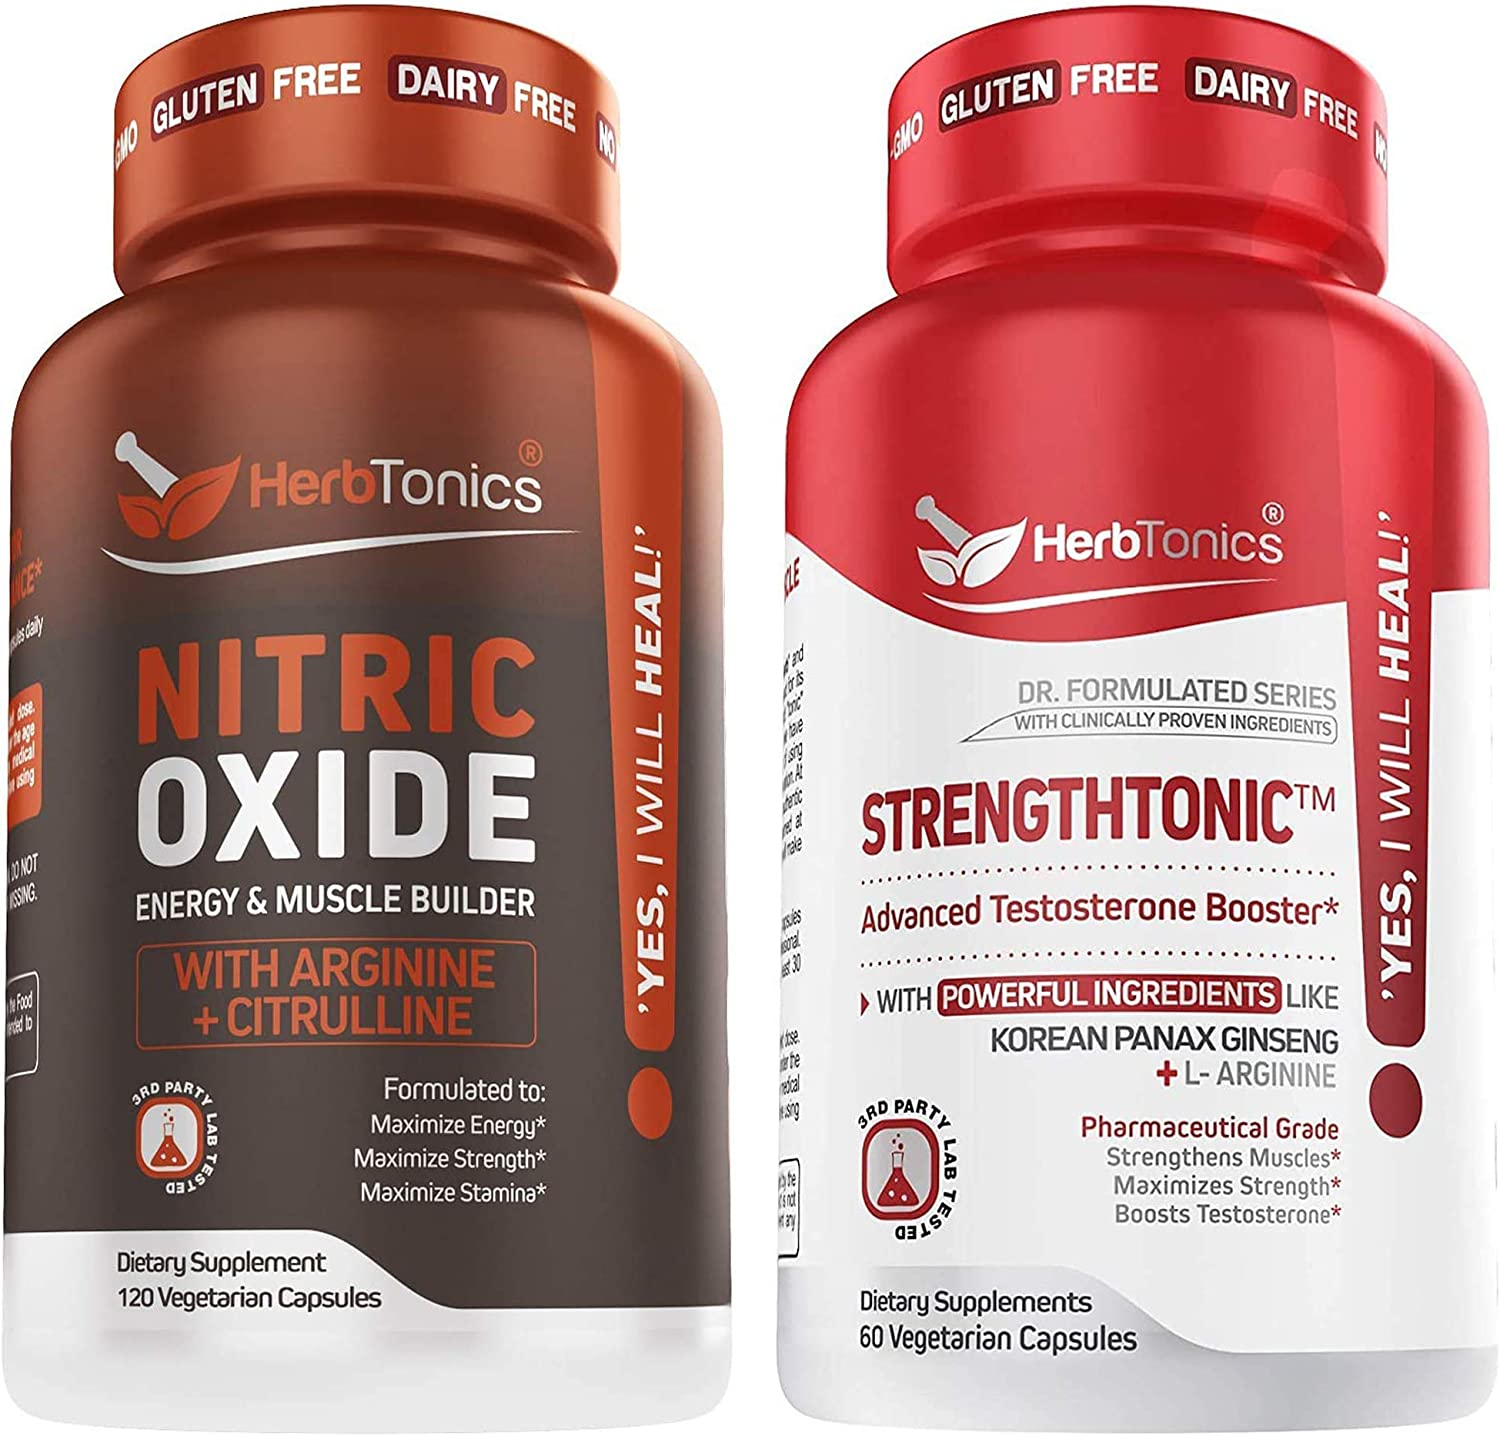 Sale item Herbtonics Nitric Oxide and Testosterone Max 51% OFF Strengthtonic Booster f